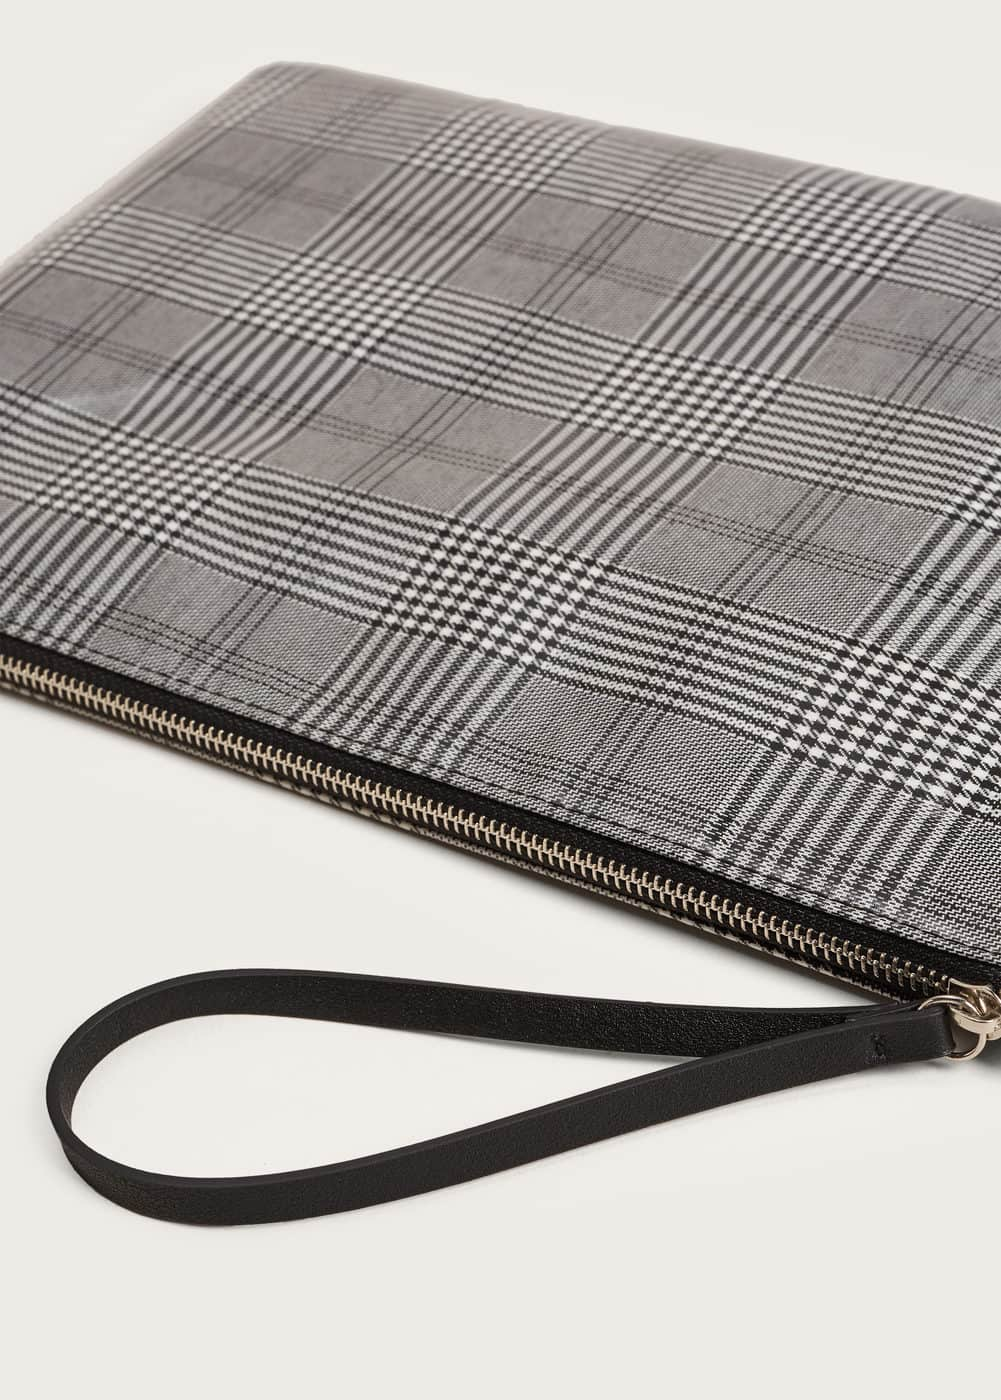 Large checked cosmetic bag  | VIOLETA BY MANGO